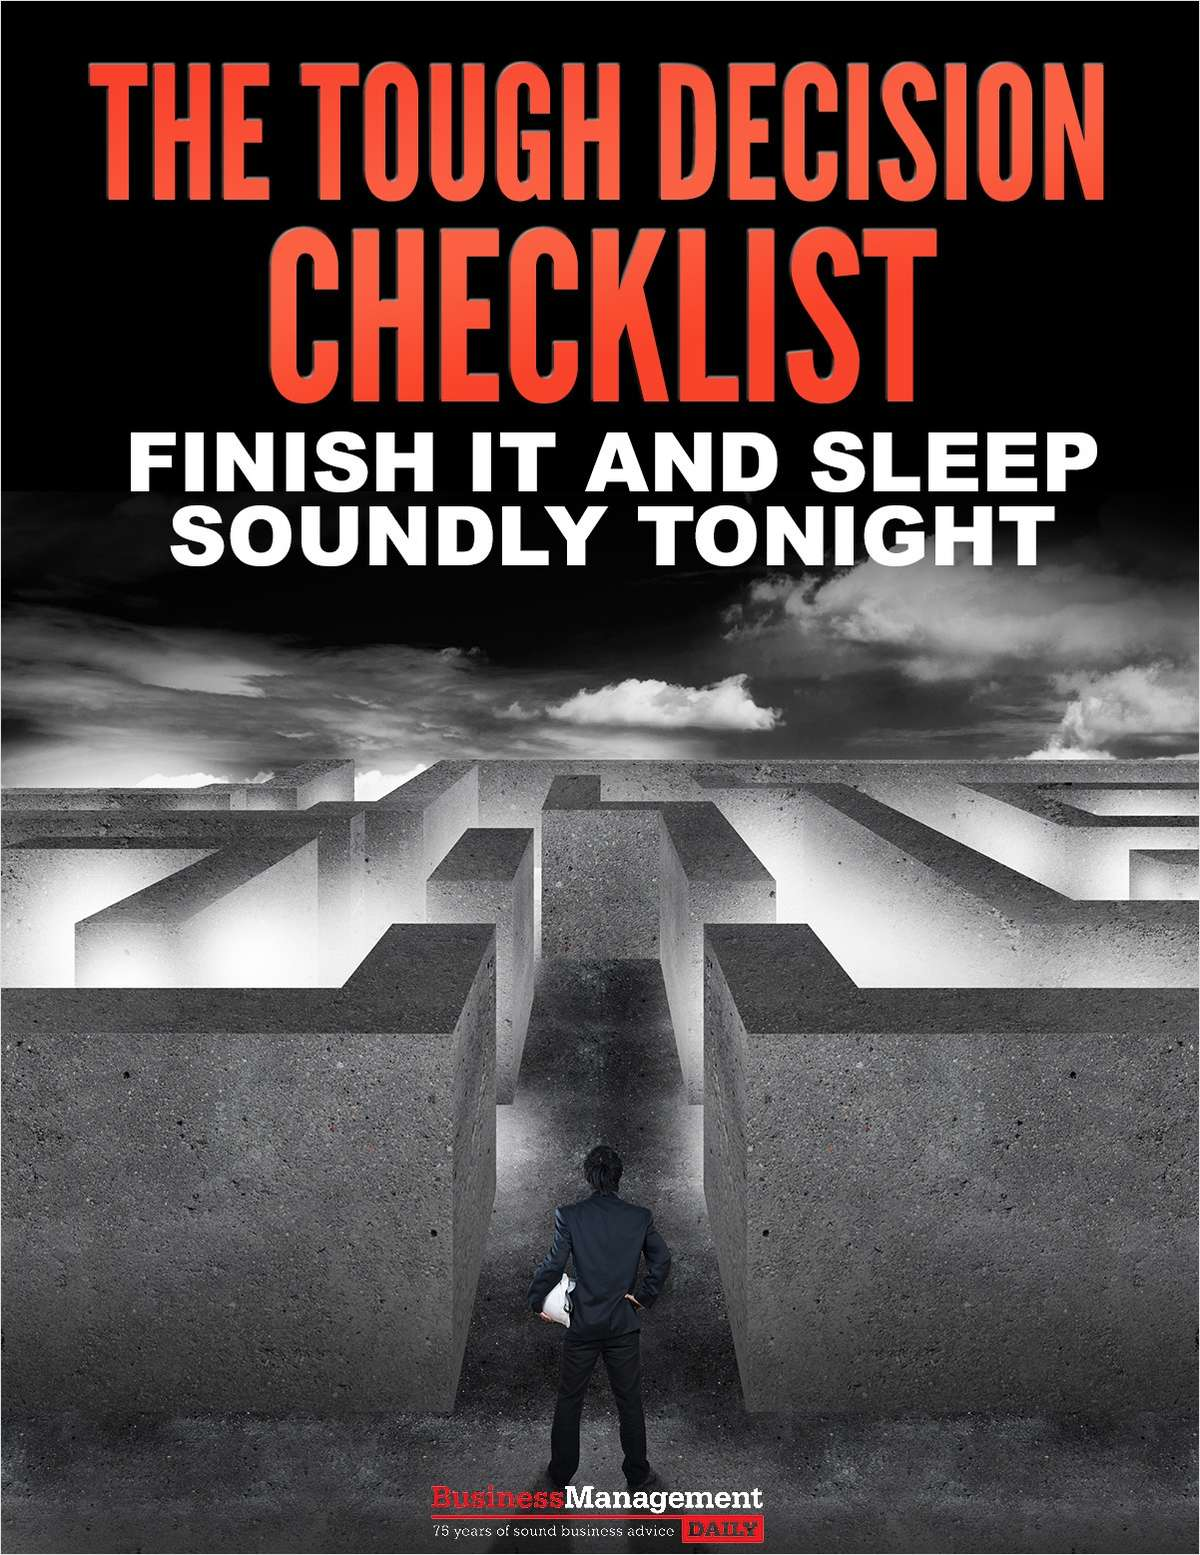 The Tough Decision Checklist - Finish It and Sleep Soundly Tonight